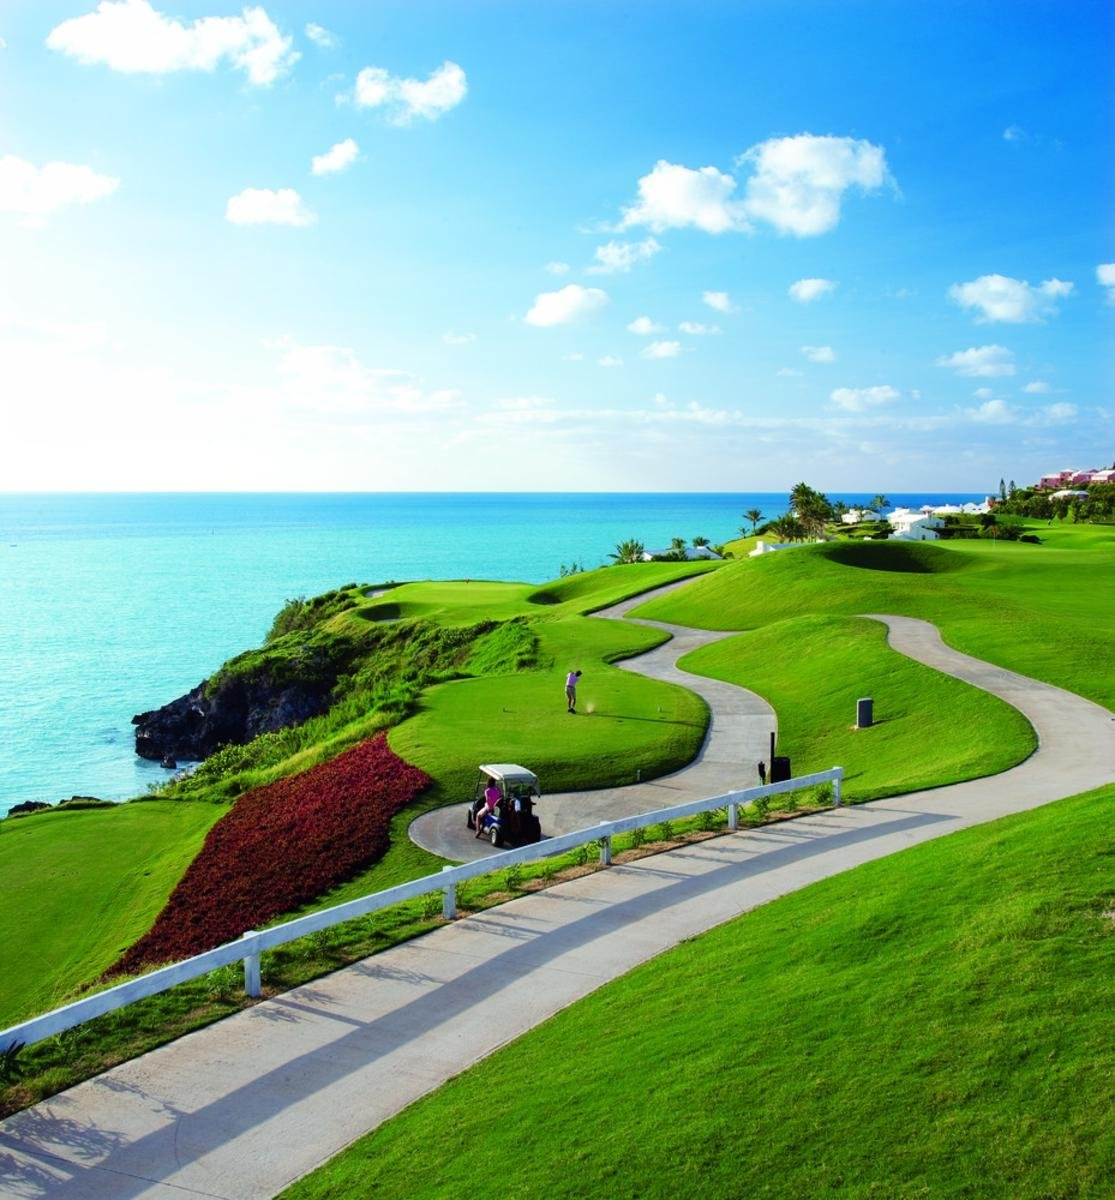 Bermuda Tourism Honeymoons By Bermuda Department Of Tourism Image 9 Of 10